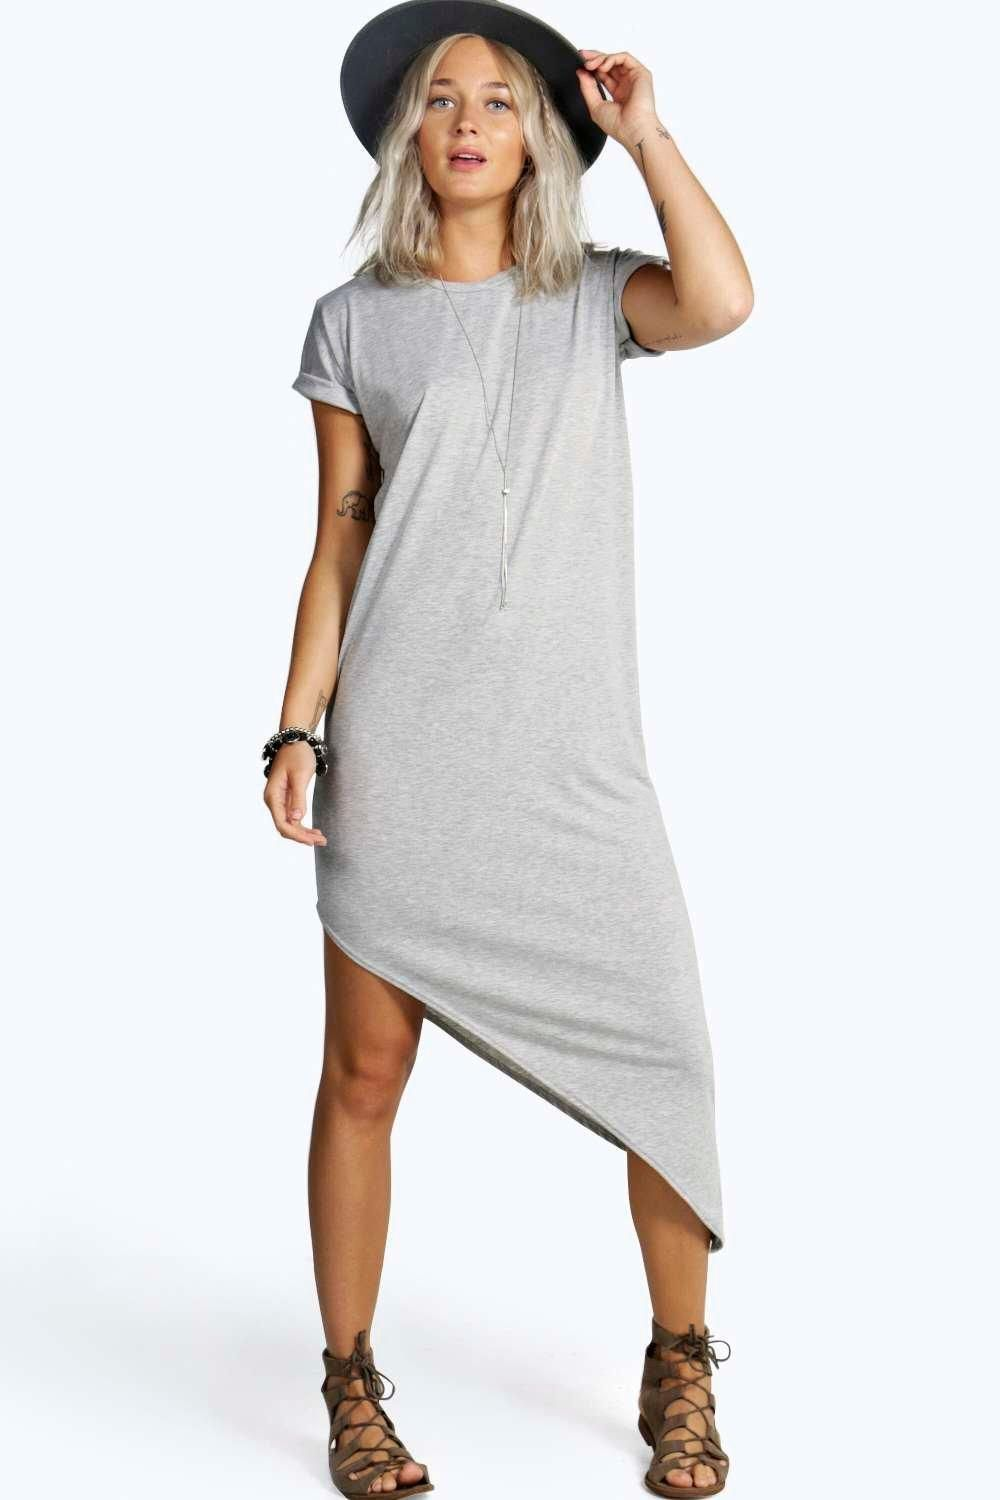 Distressed, T-Shirt Femme, Blanc, SmallBoohoo